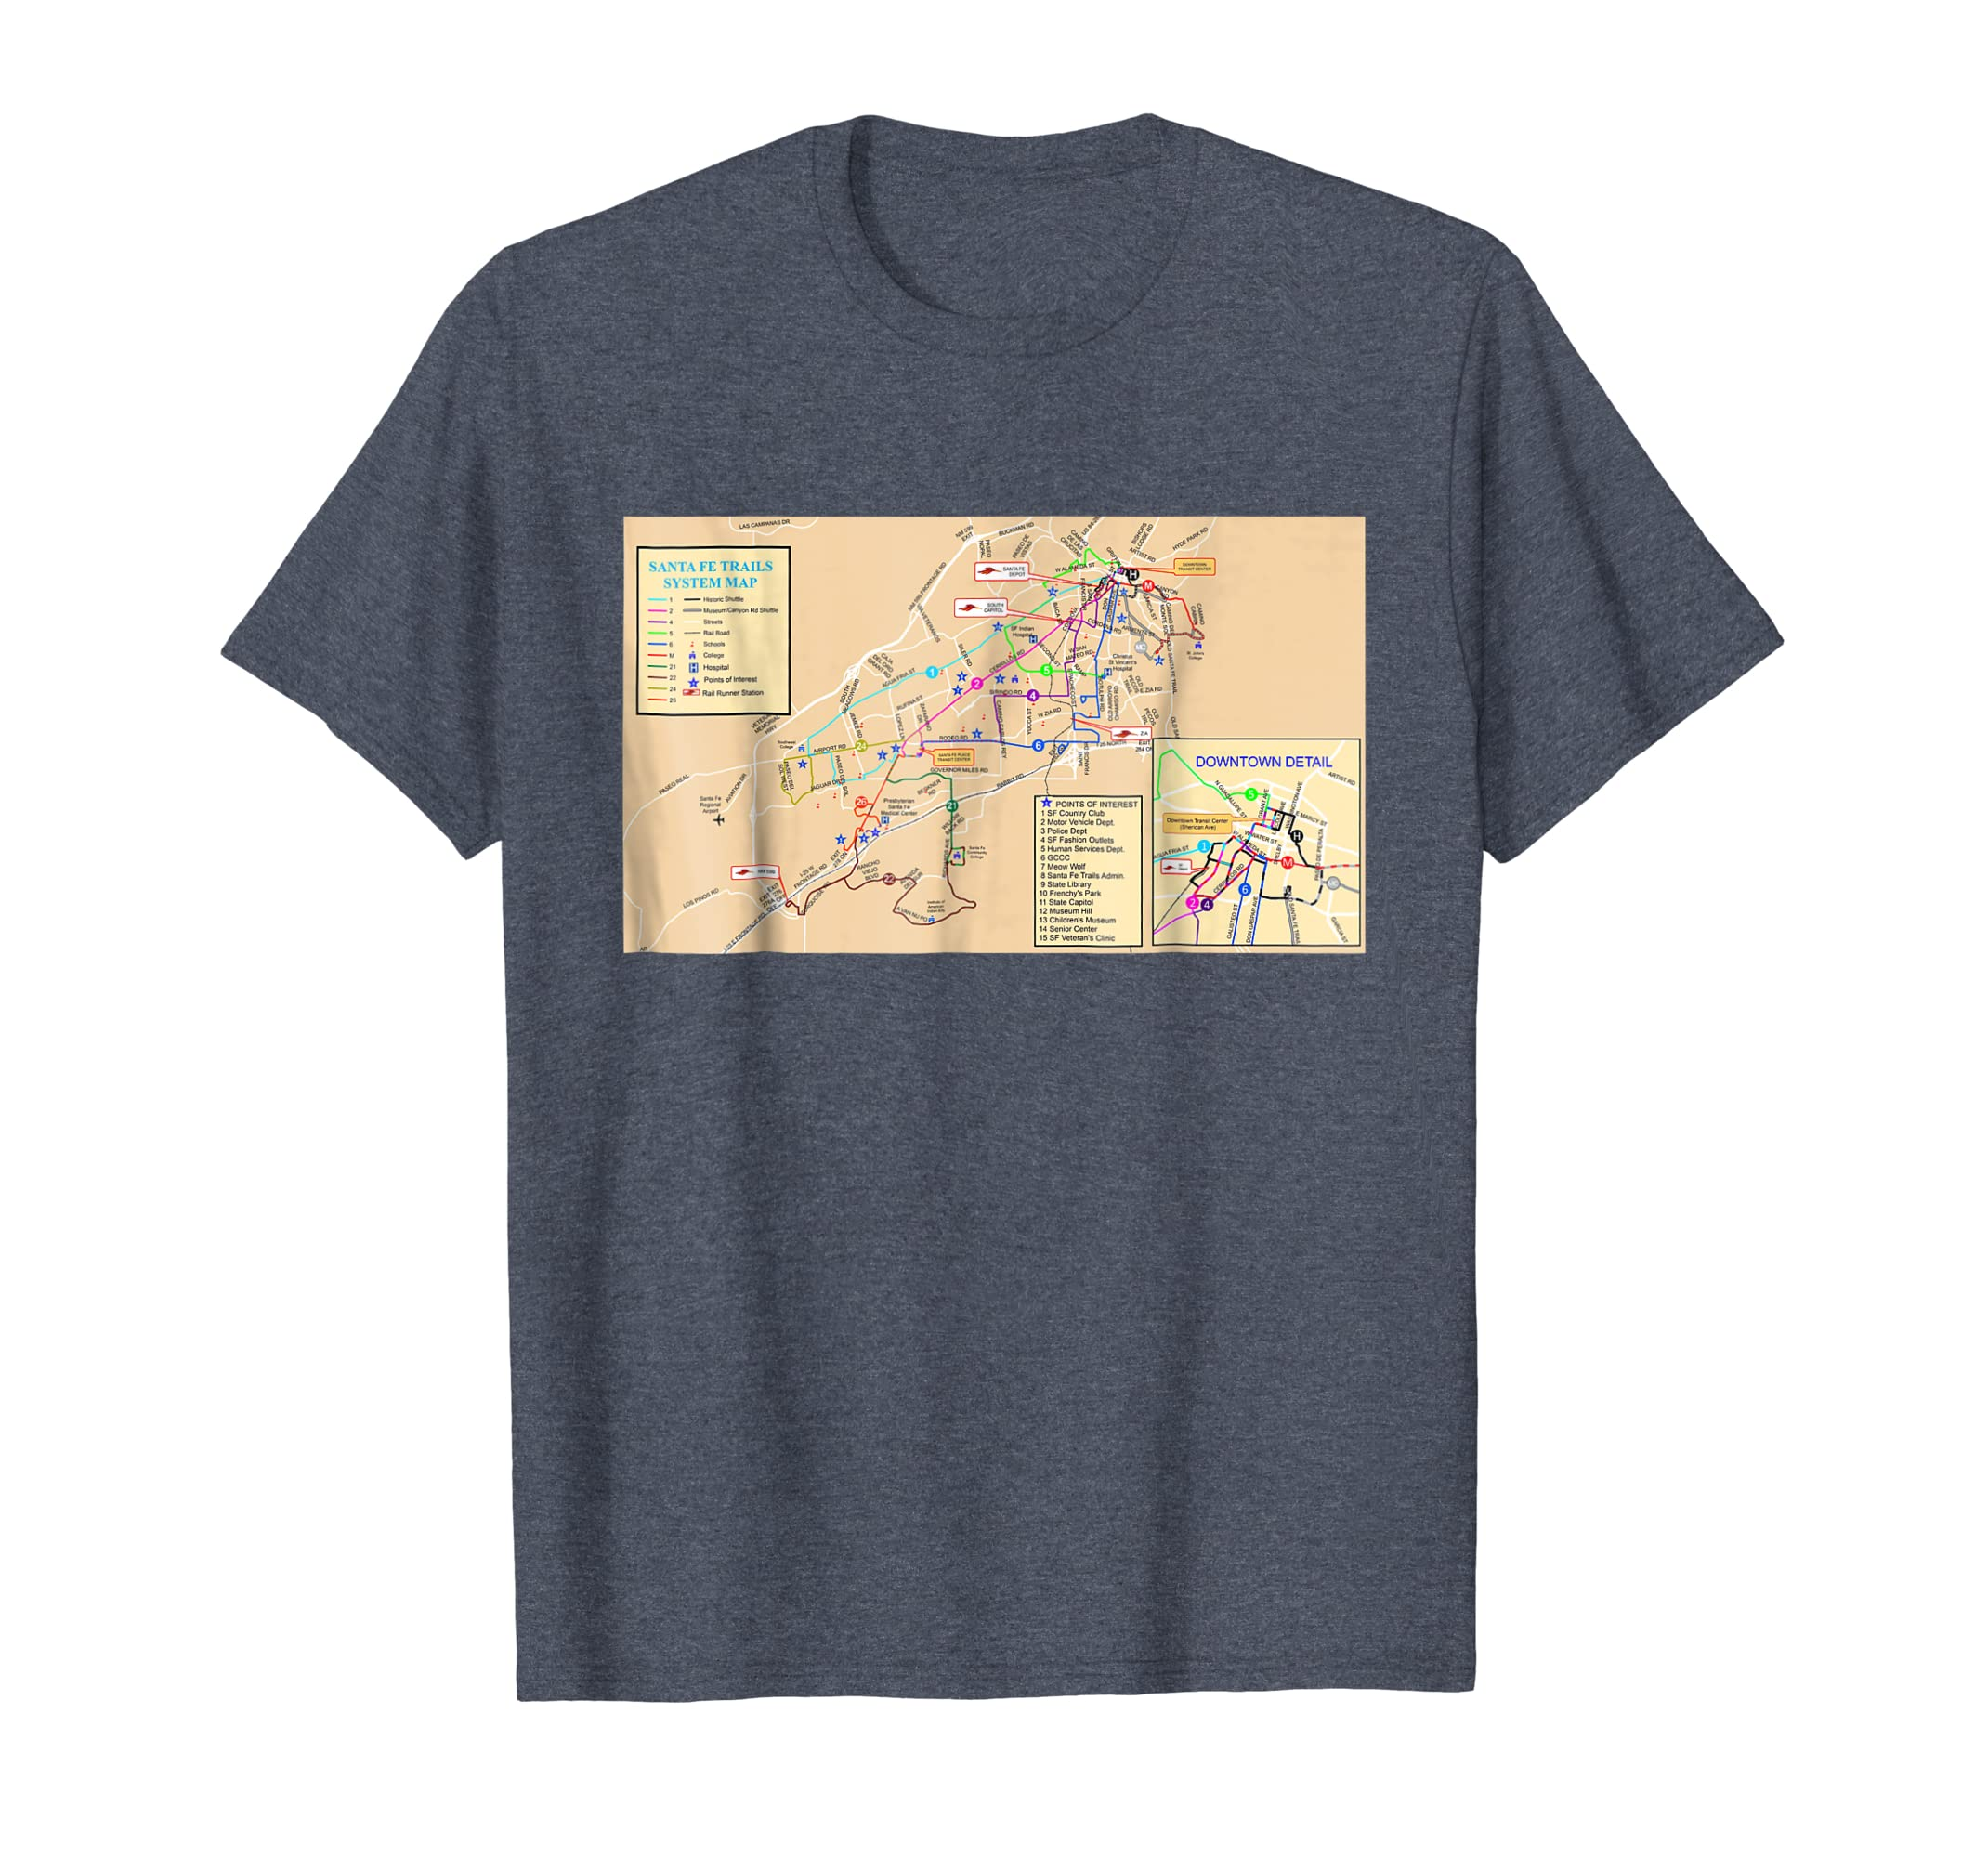 Amazon.com: Santa Fe System Map - New Mexico - USA - T-shirt ... on paris museums map, contact us map, espanola map, clayton ok map, shopping map, philadelphia museums map, boston museums map, chicago museums map,